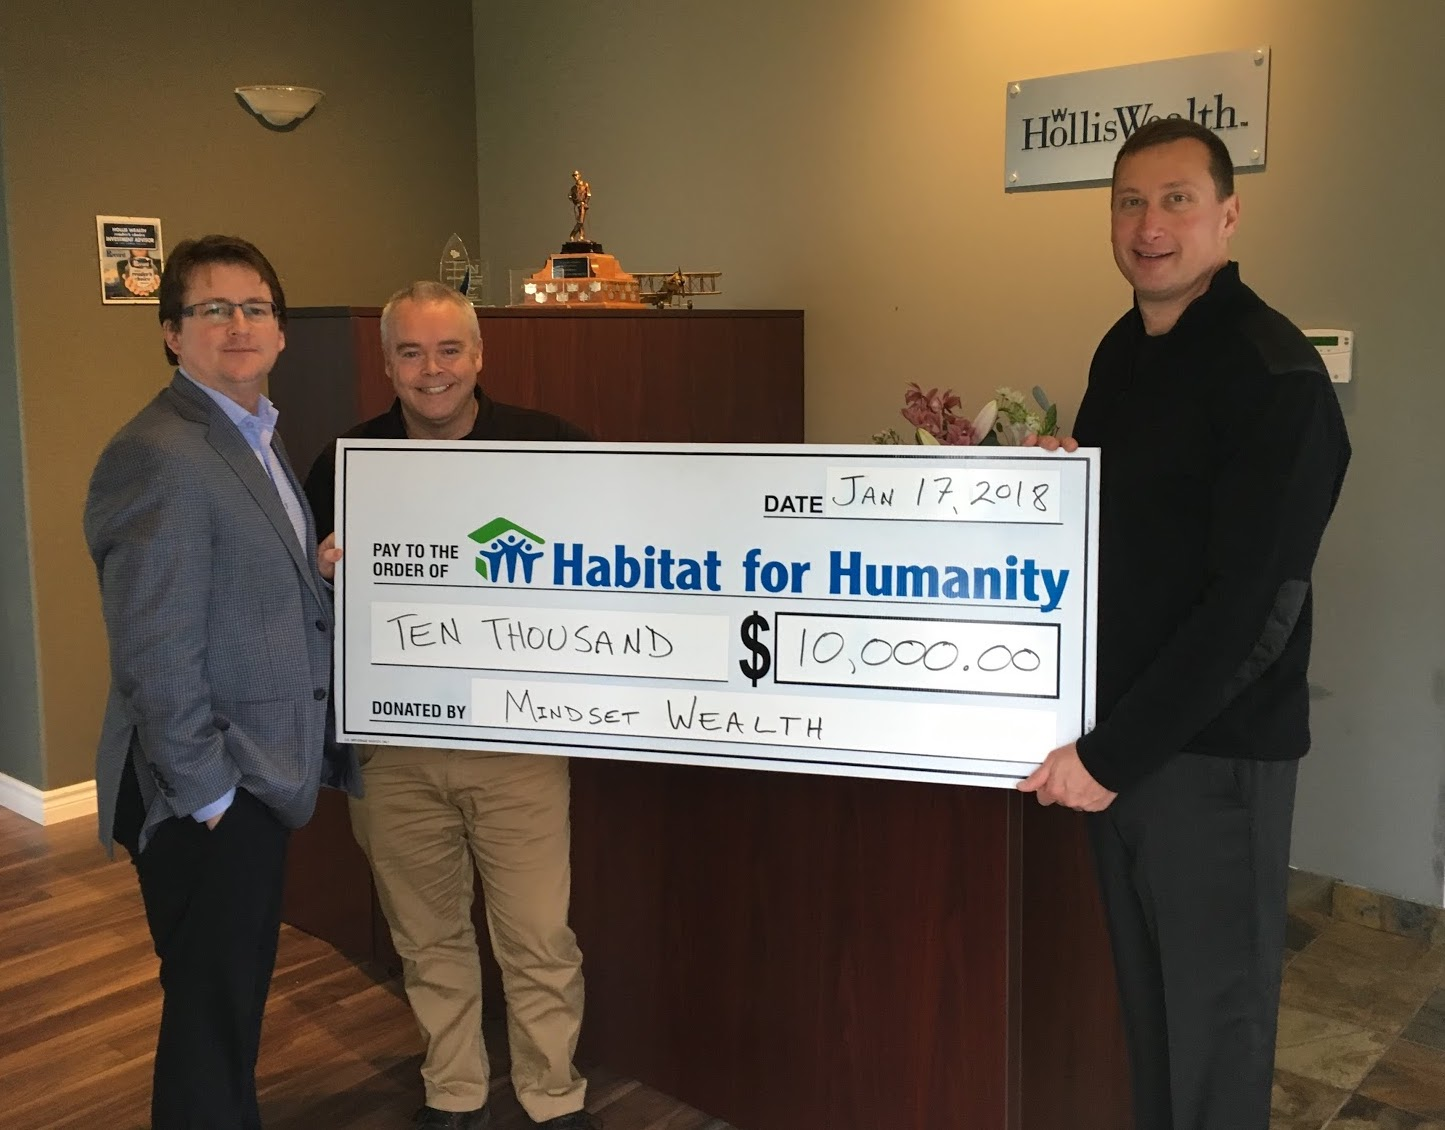 Mindset Wealth presents $10,000 cheque to Habitat for Humanity